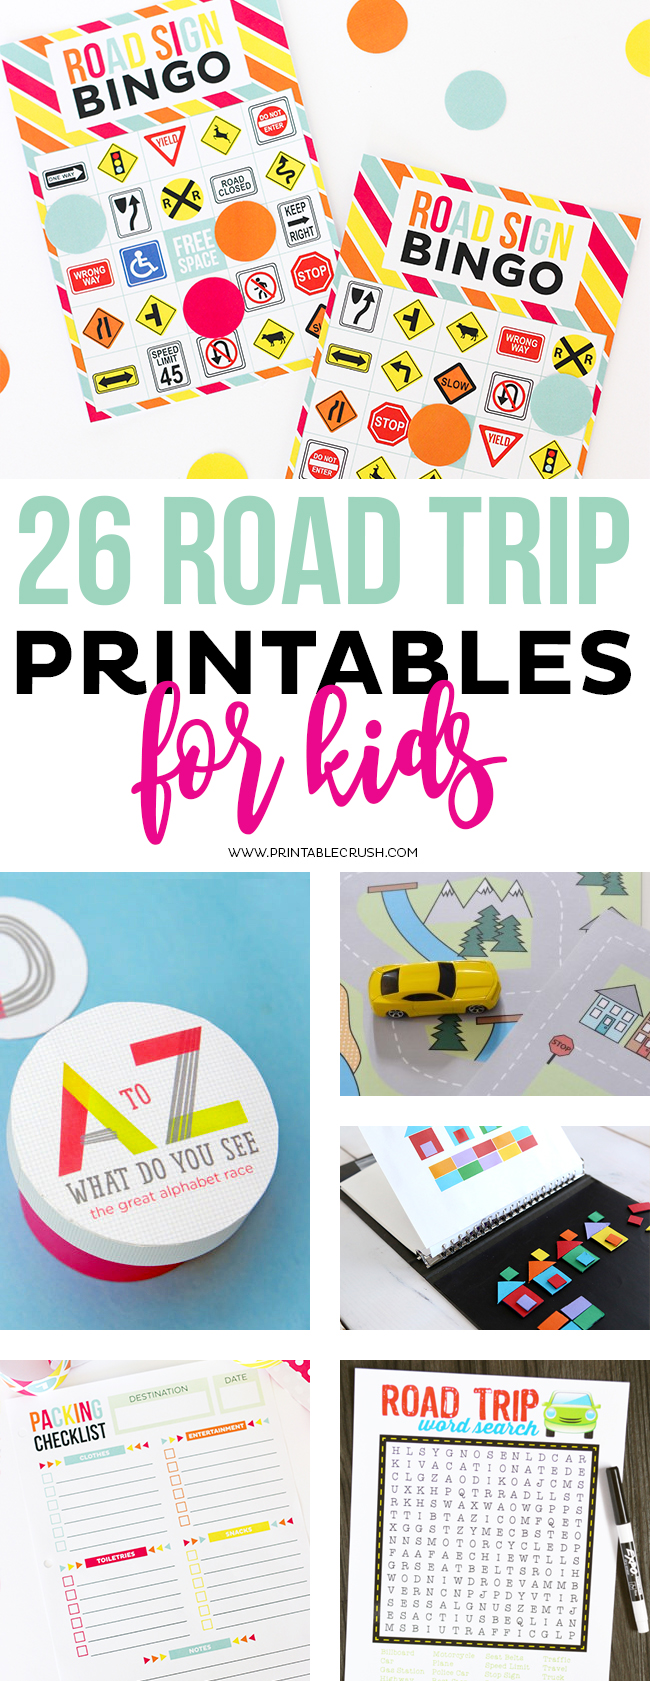 This list of 26 Road Trip Printables for Kids will keep your kiddos entertained for hours in the car!